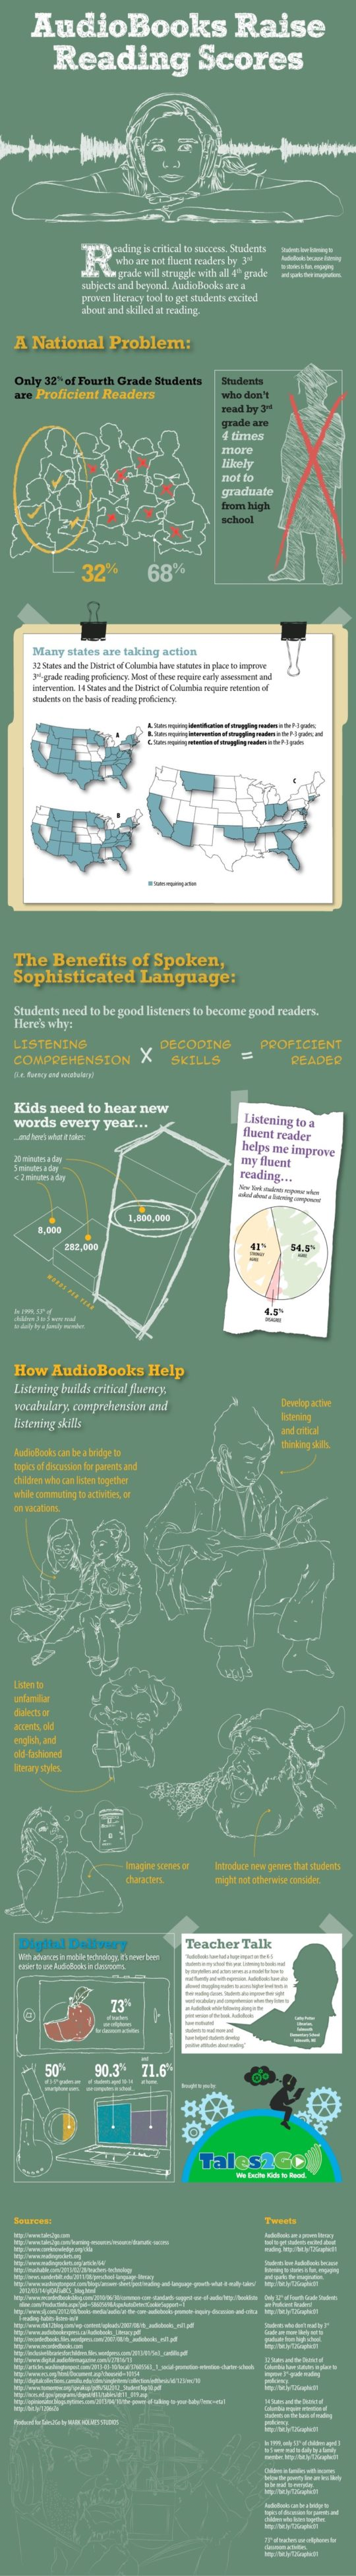 How audiobooks help increase literacy #infographic